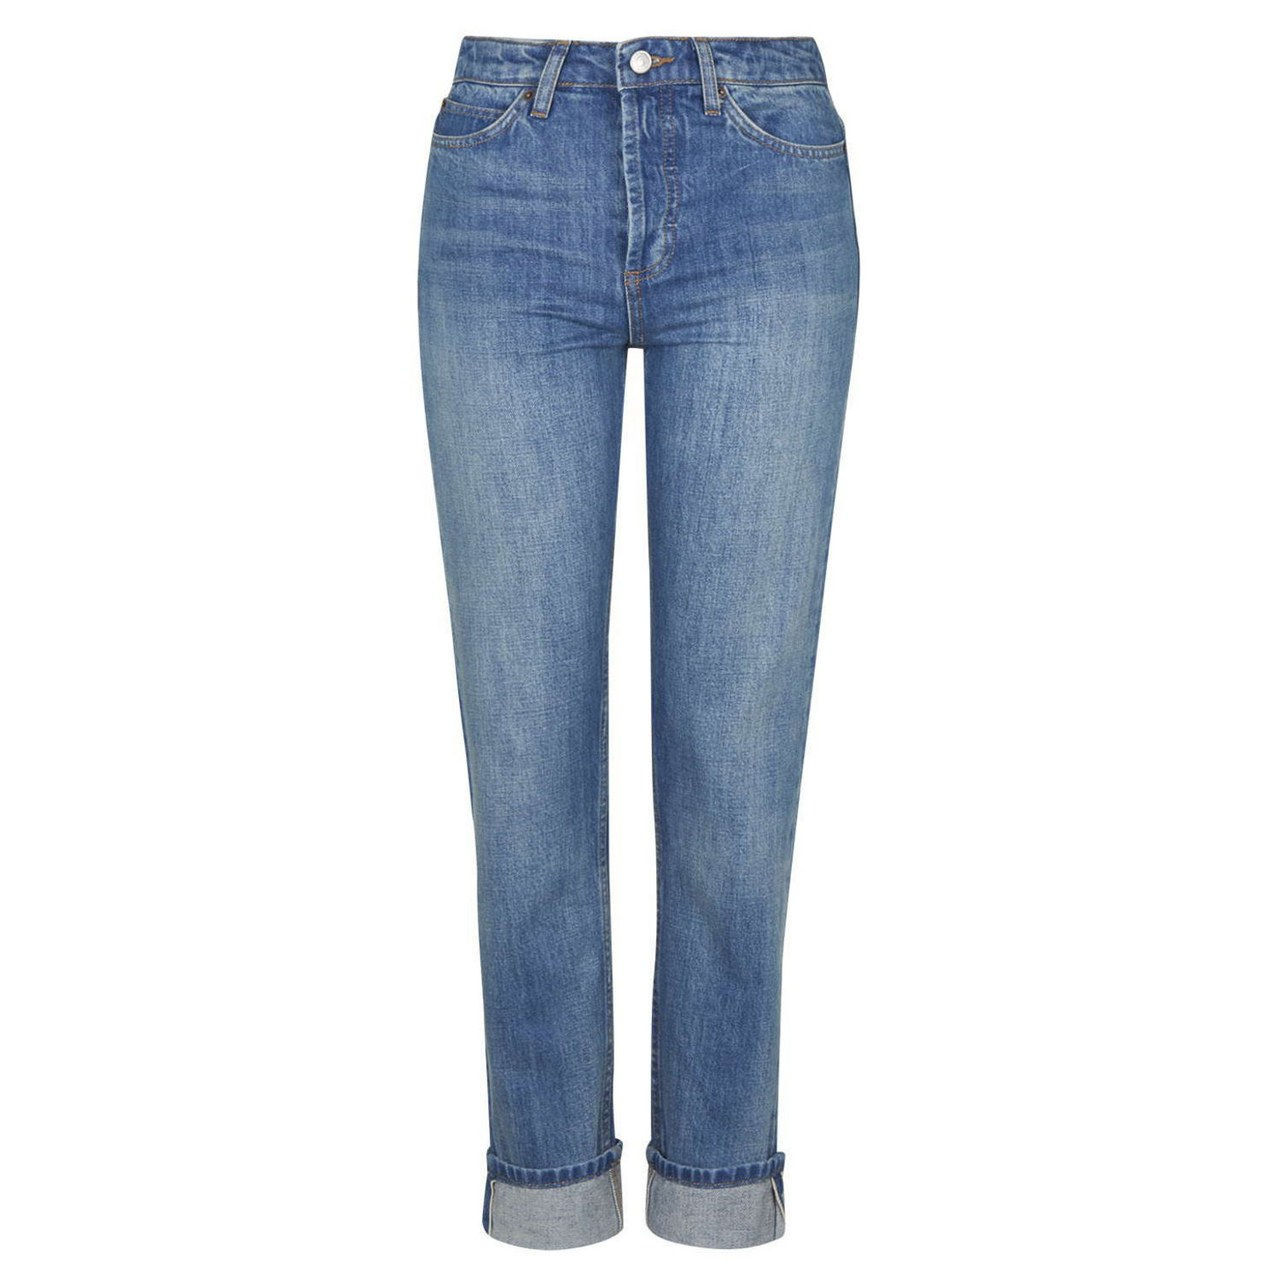 सर्दी weather denim topshop jeans